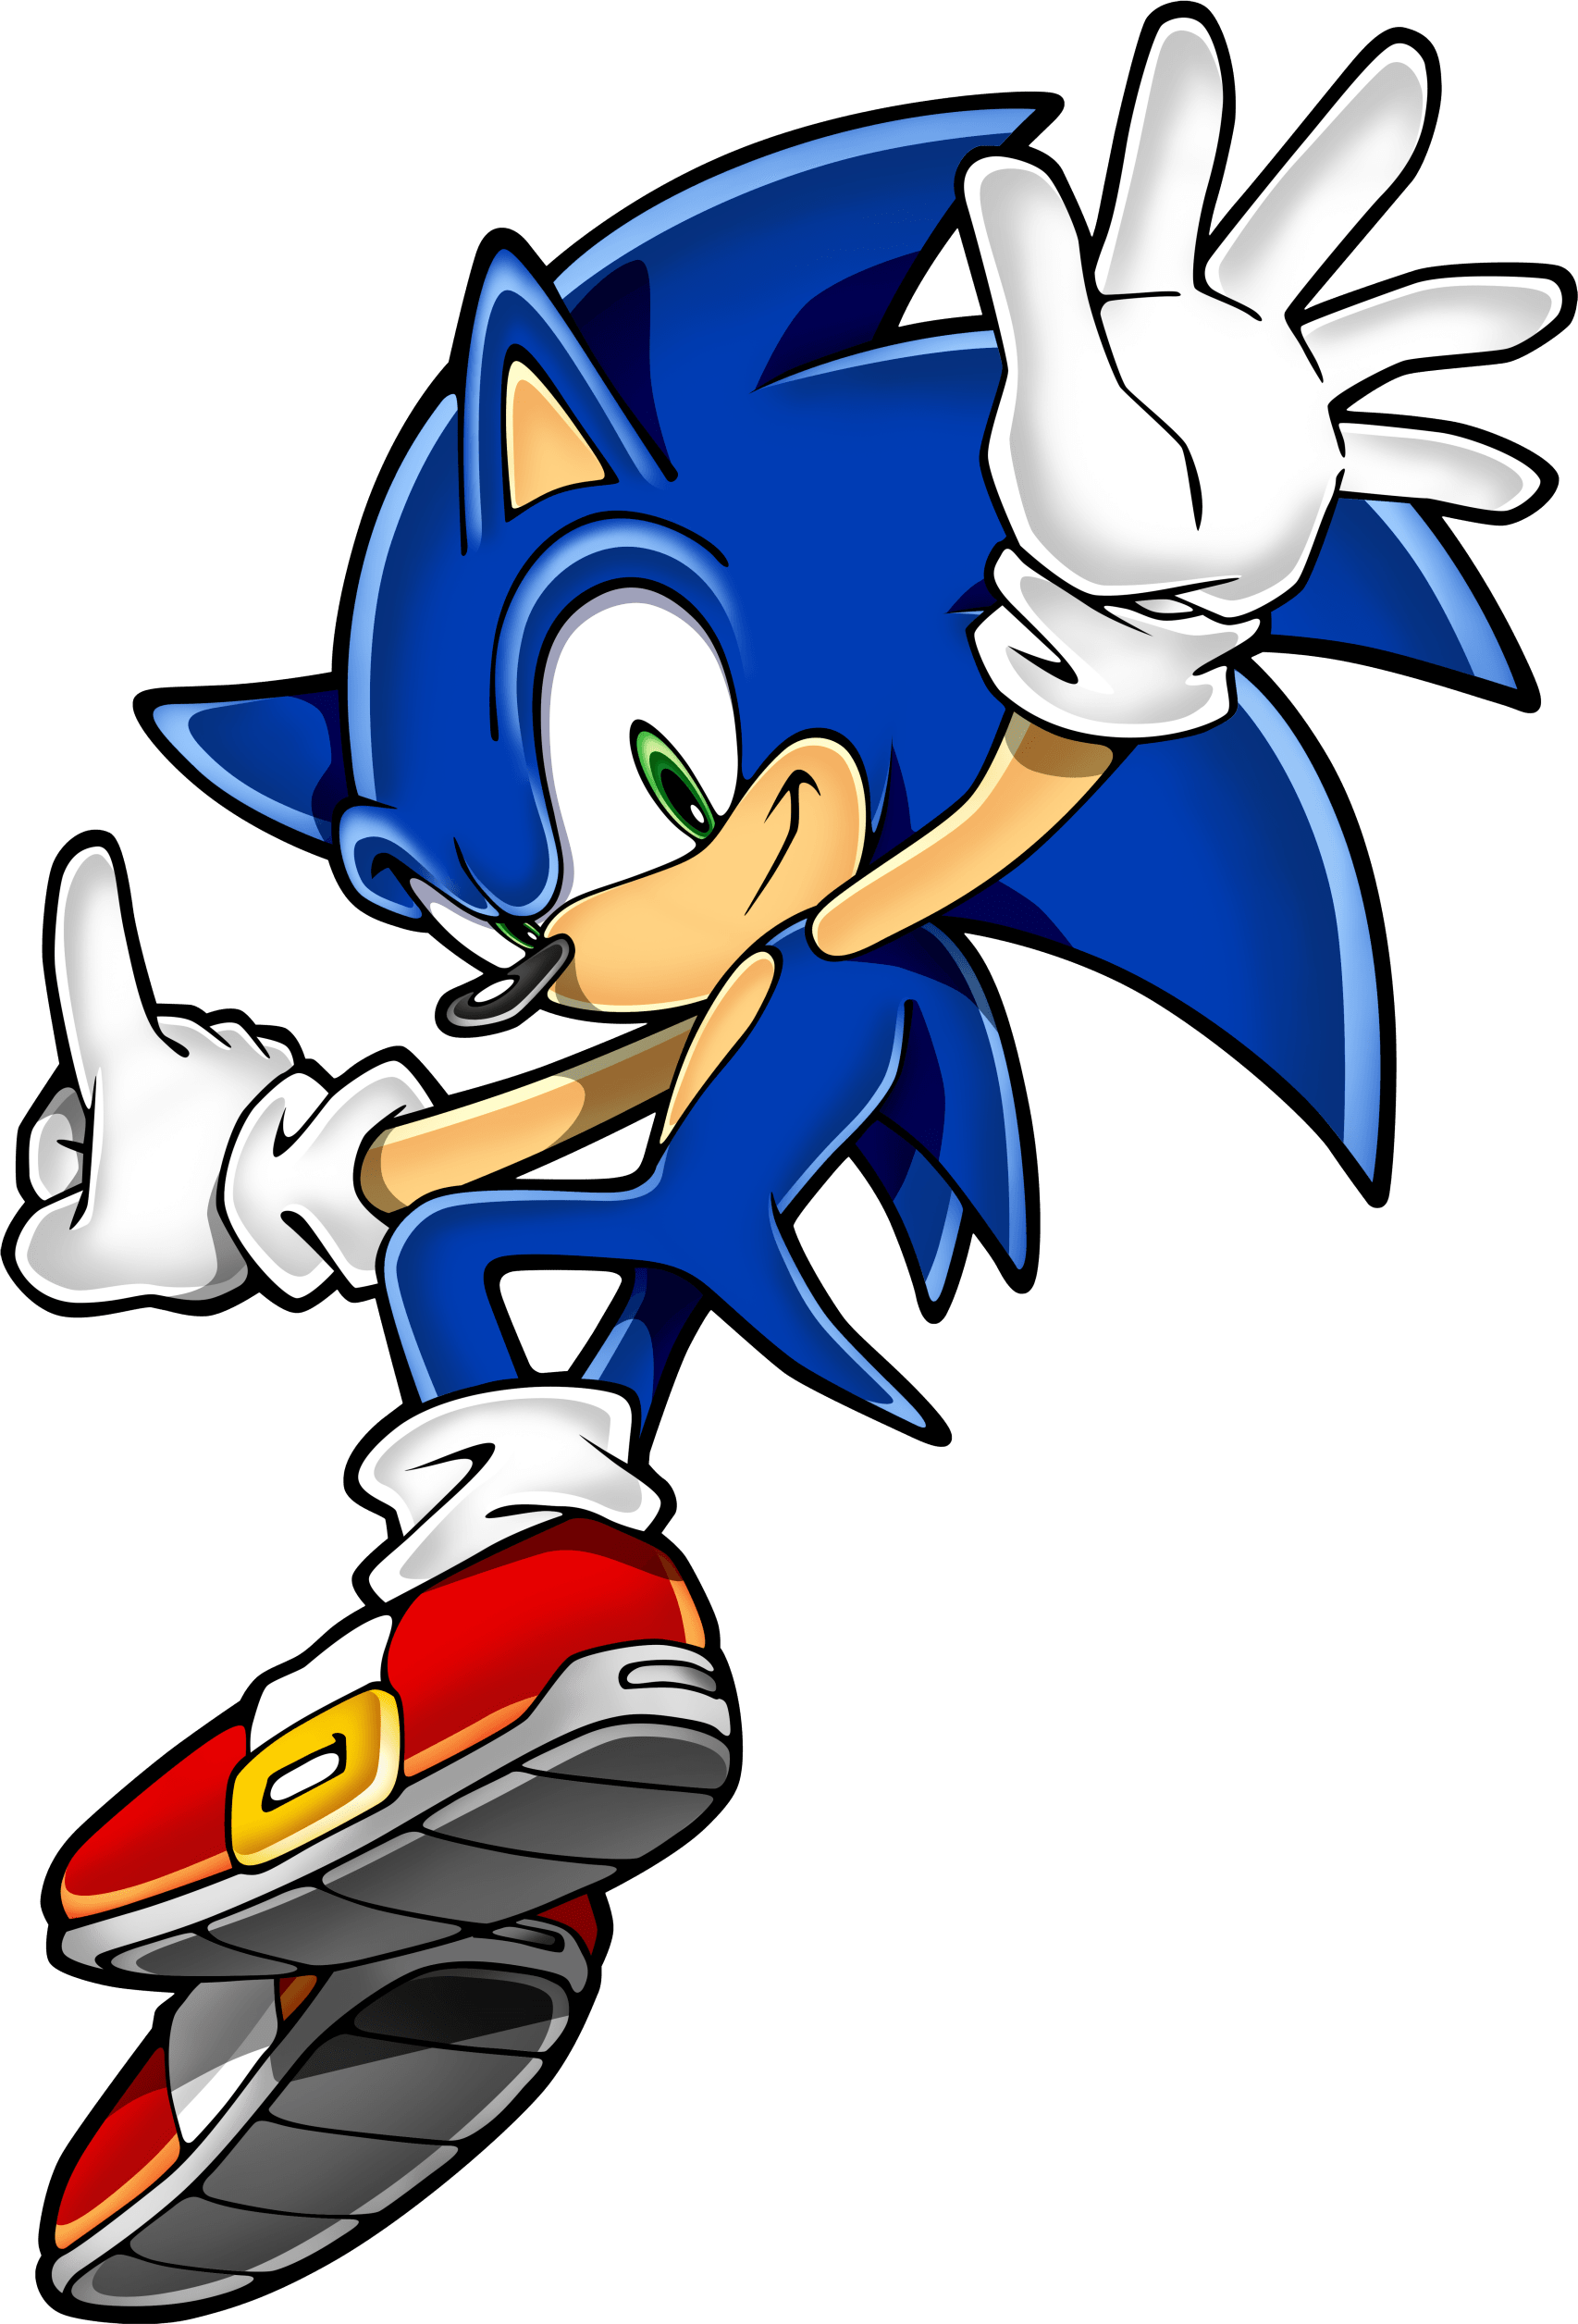 1706x2512 Sonic Hedgehog Jumping Transparent Png